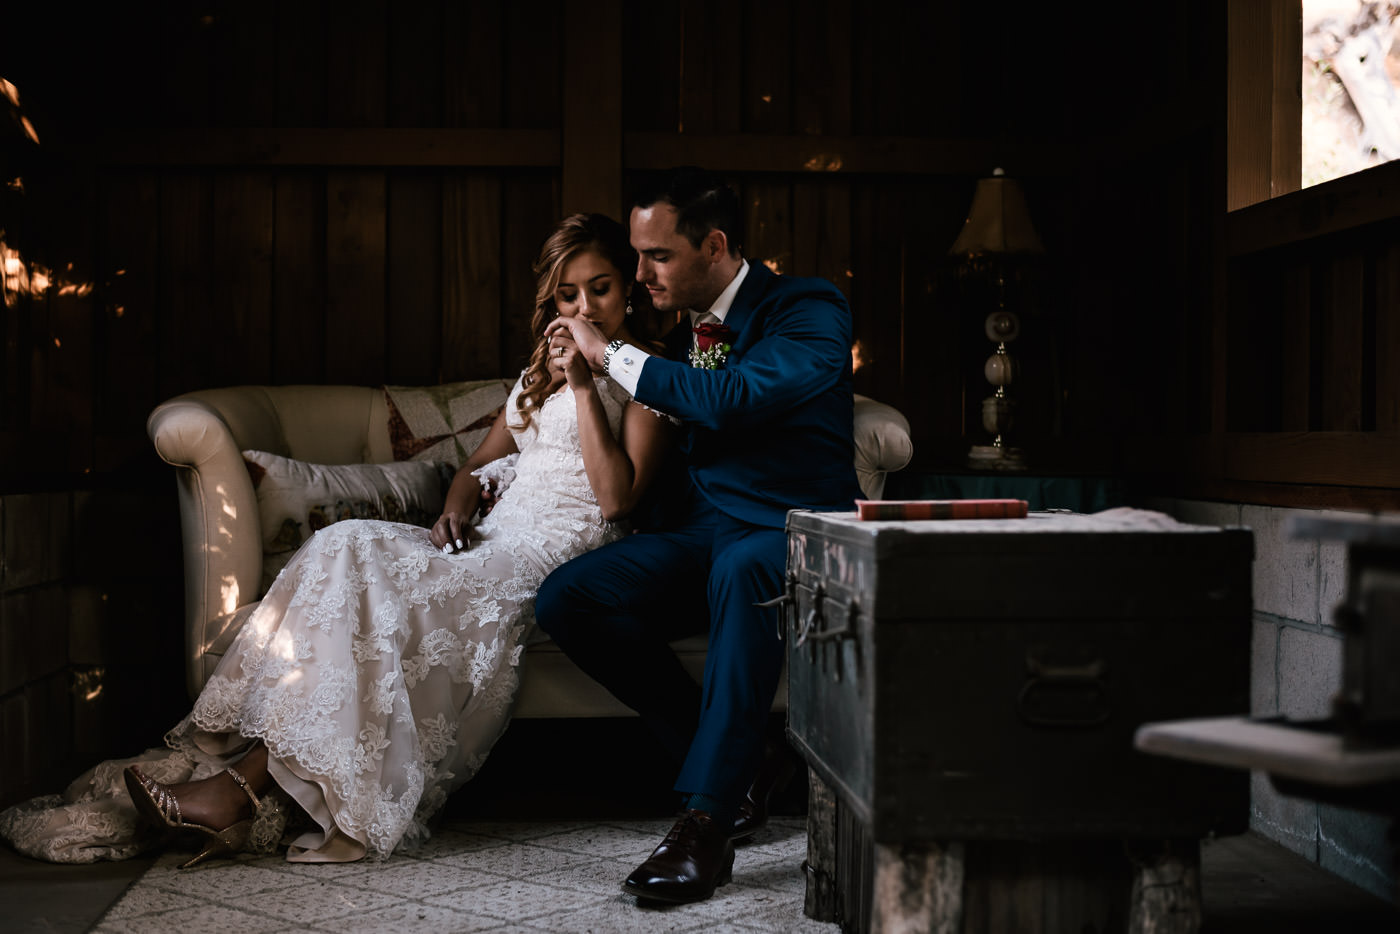 Romantic moment between a newly married couple captured at The Homestead.